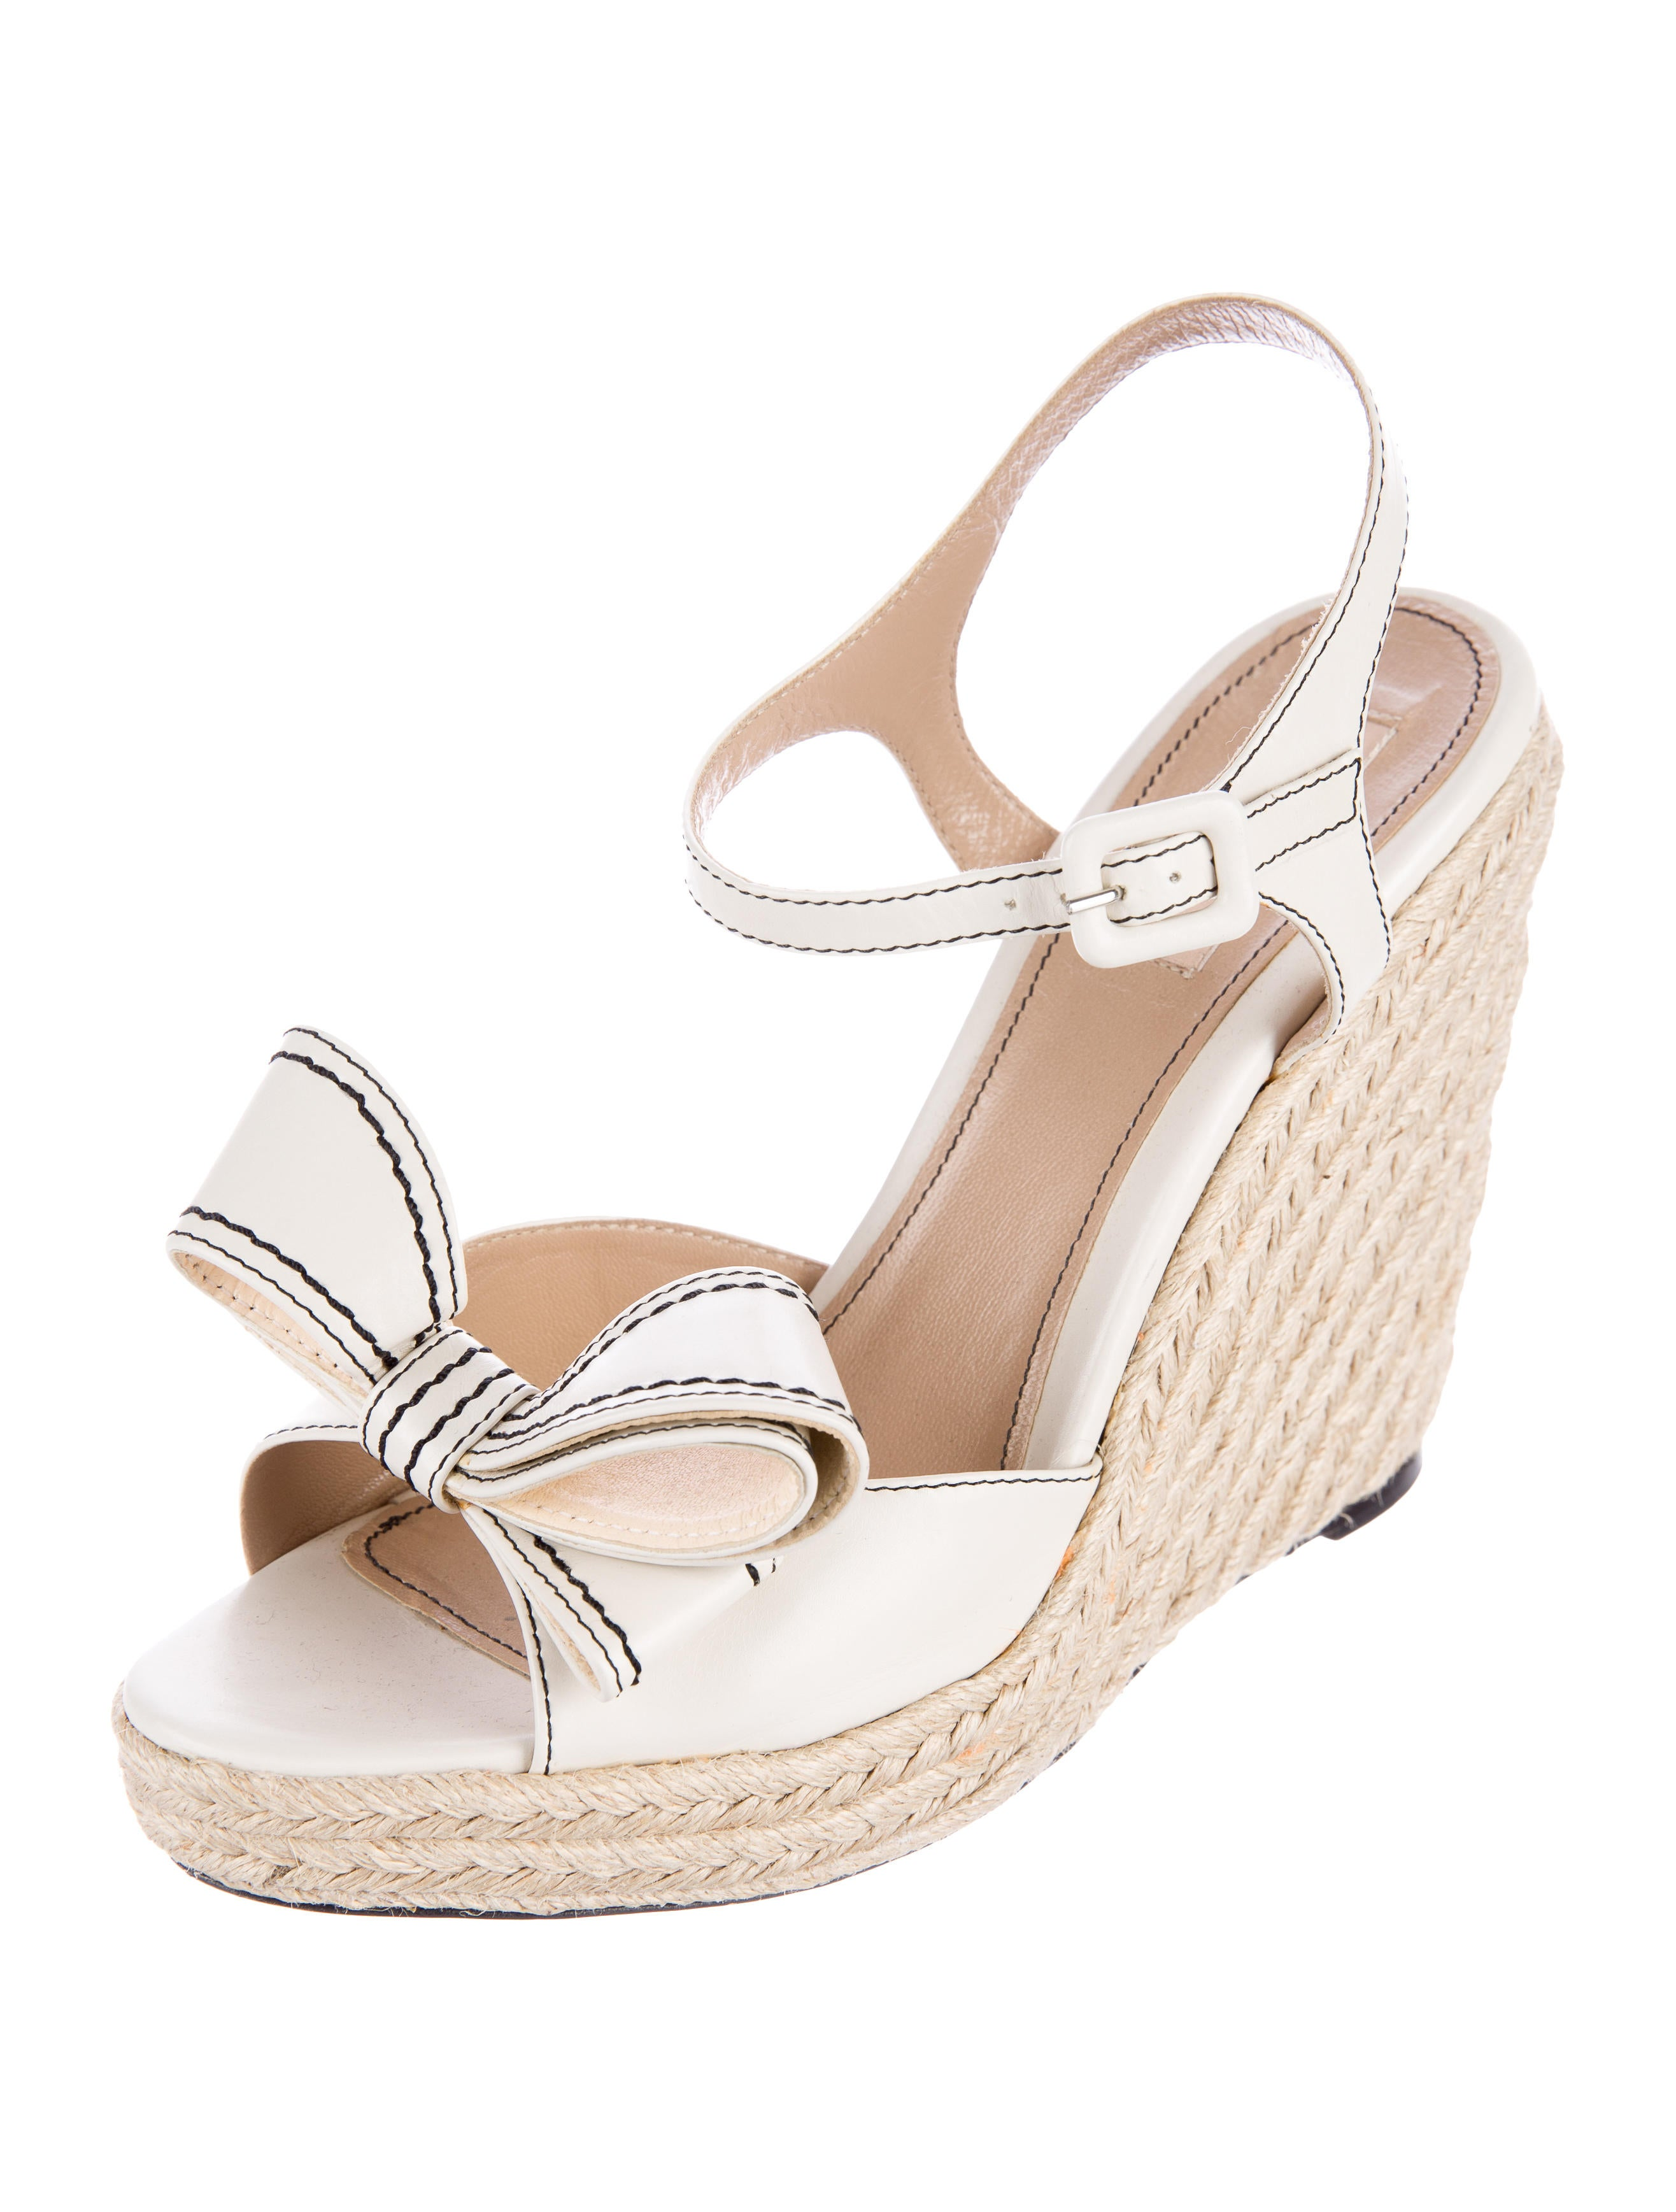 valentino bow embellished espadrille wedge sandals shoes